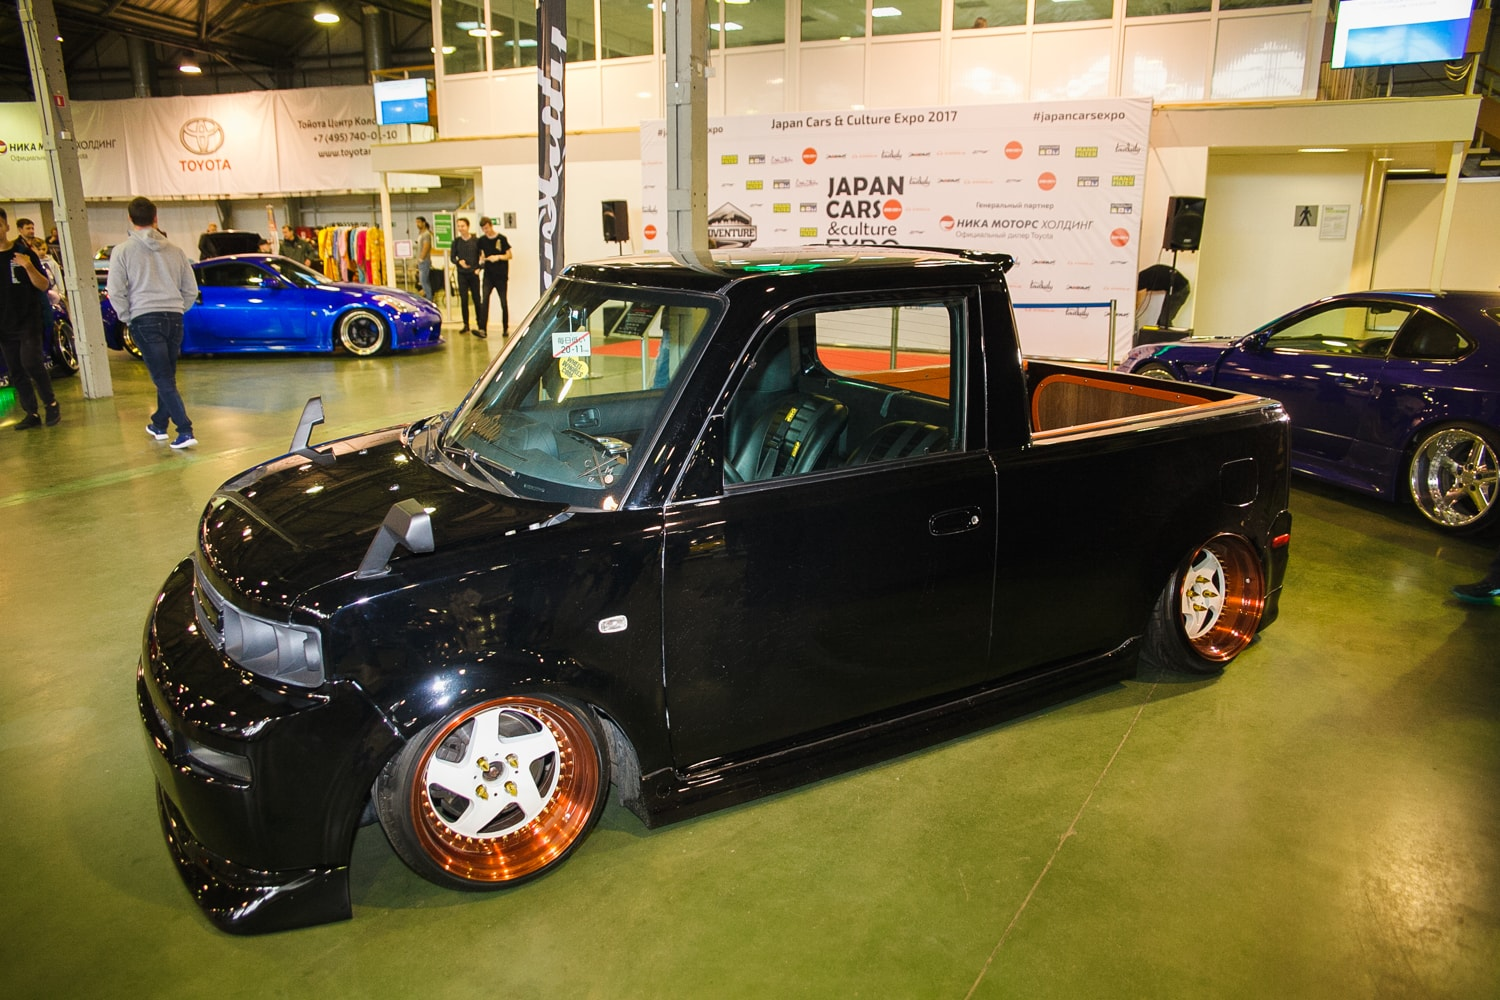 Besides The Owners Of The Above Competed For The Best Title In Various  Nominations, Such As Best Tuning, Best Itasha (anime Styled Vinyl), Best  Kanjo Racer ...